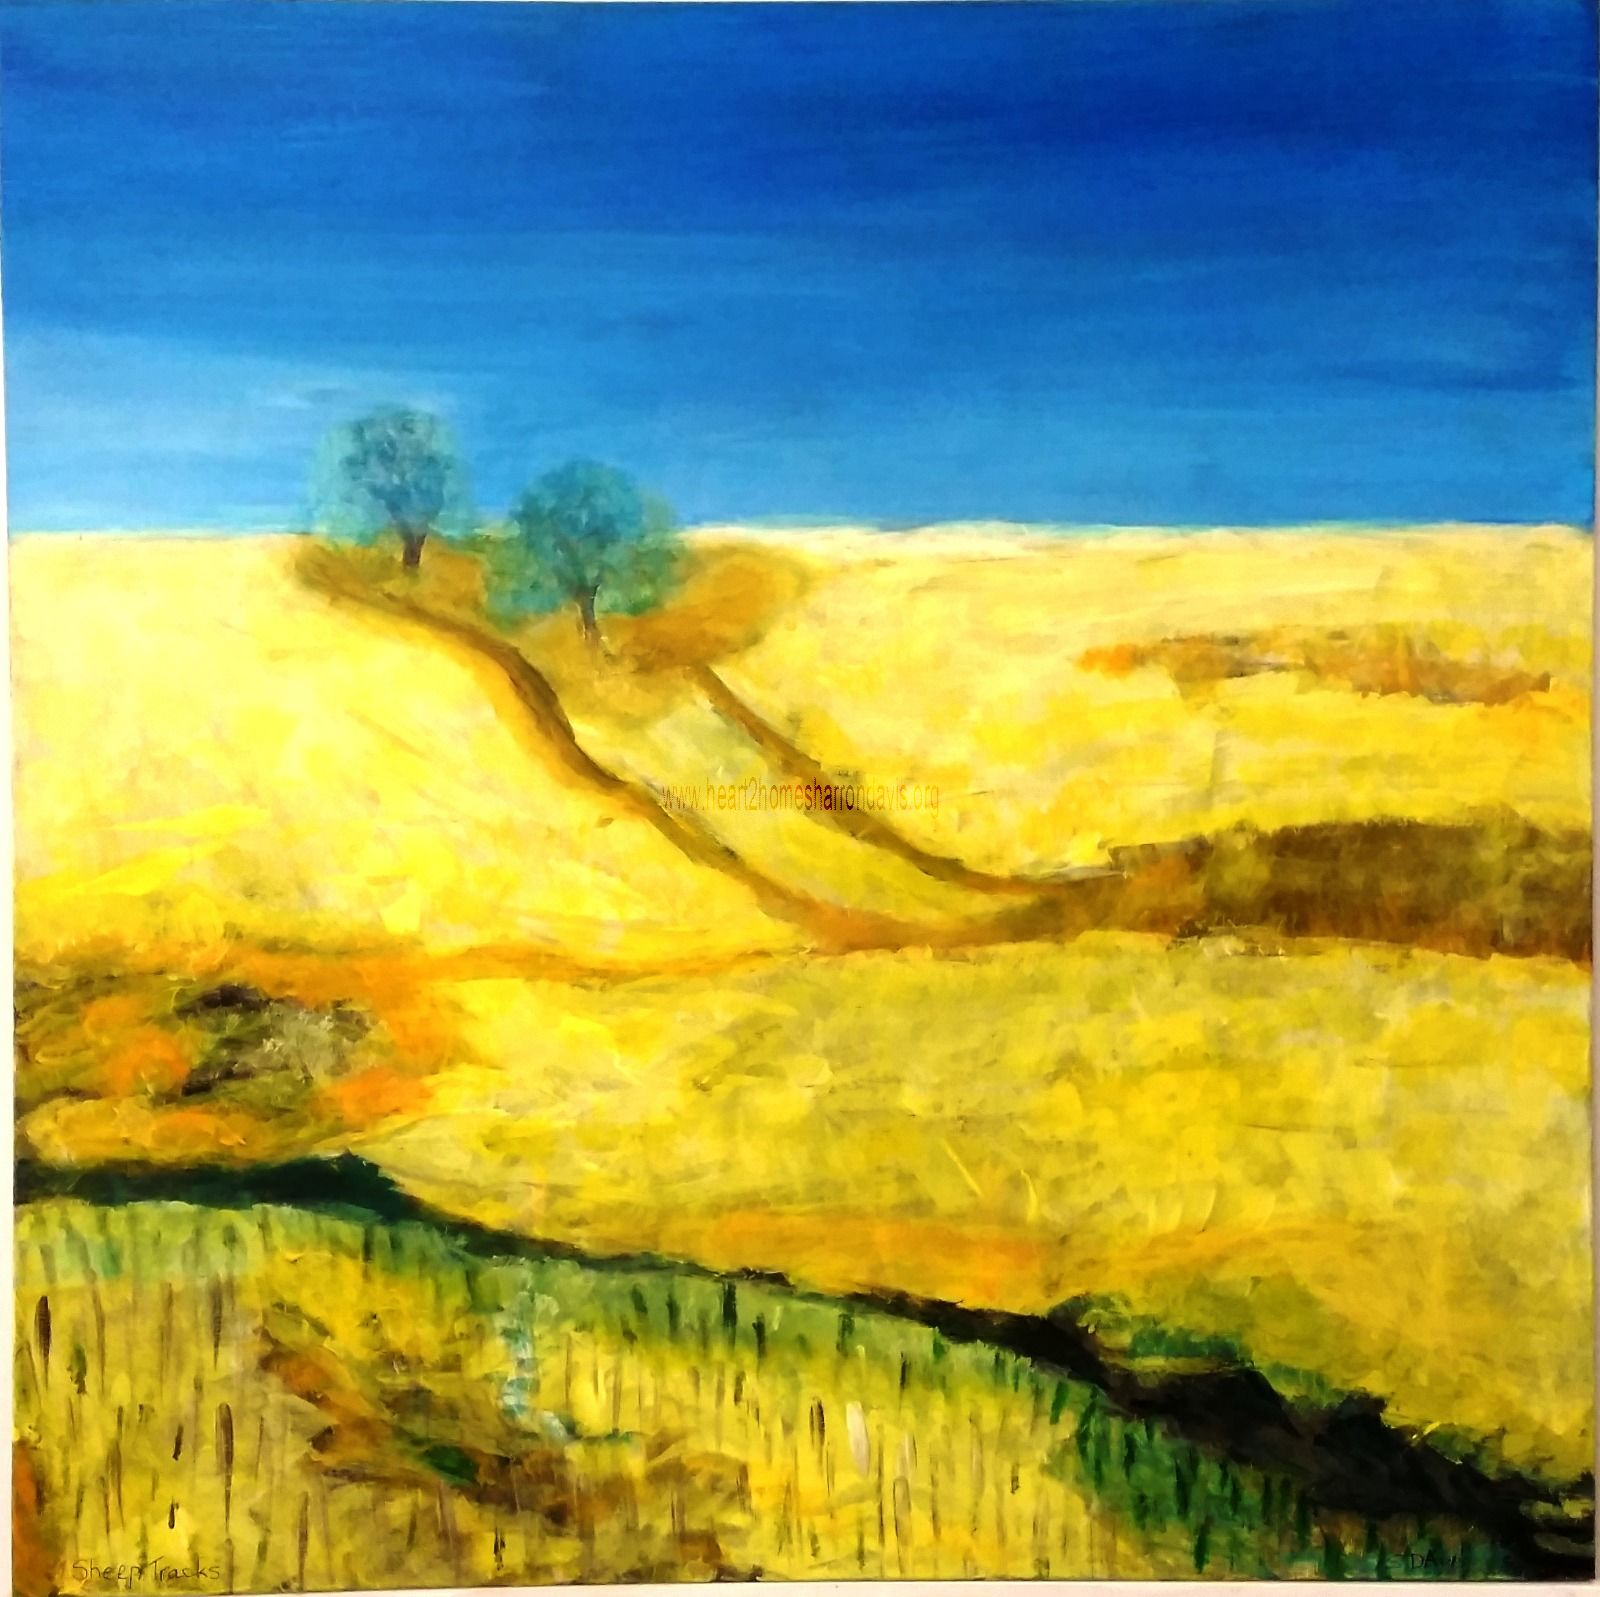 SHEEP TRACKS 36IN X 36 IN ACRYLIC AU$1000.00